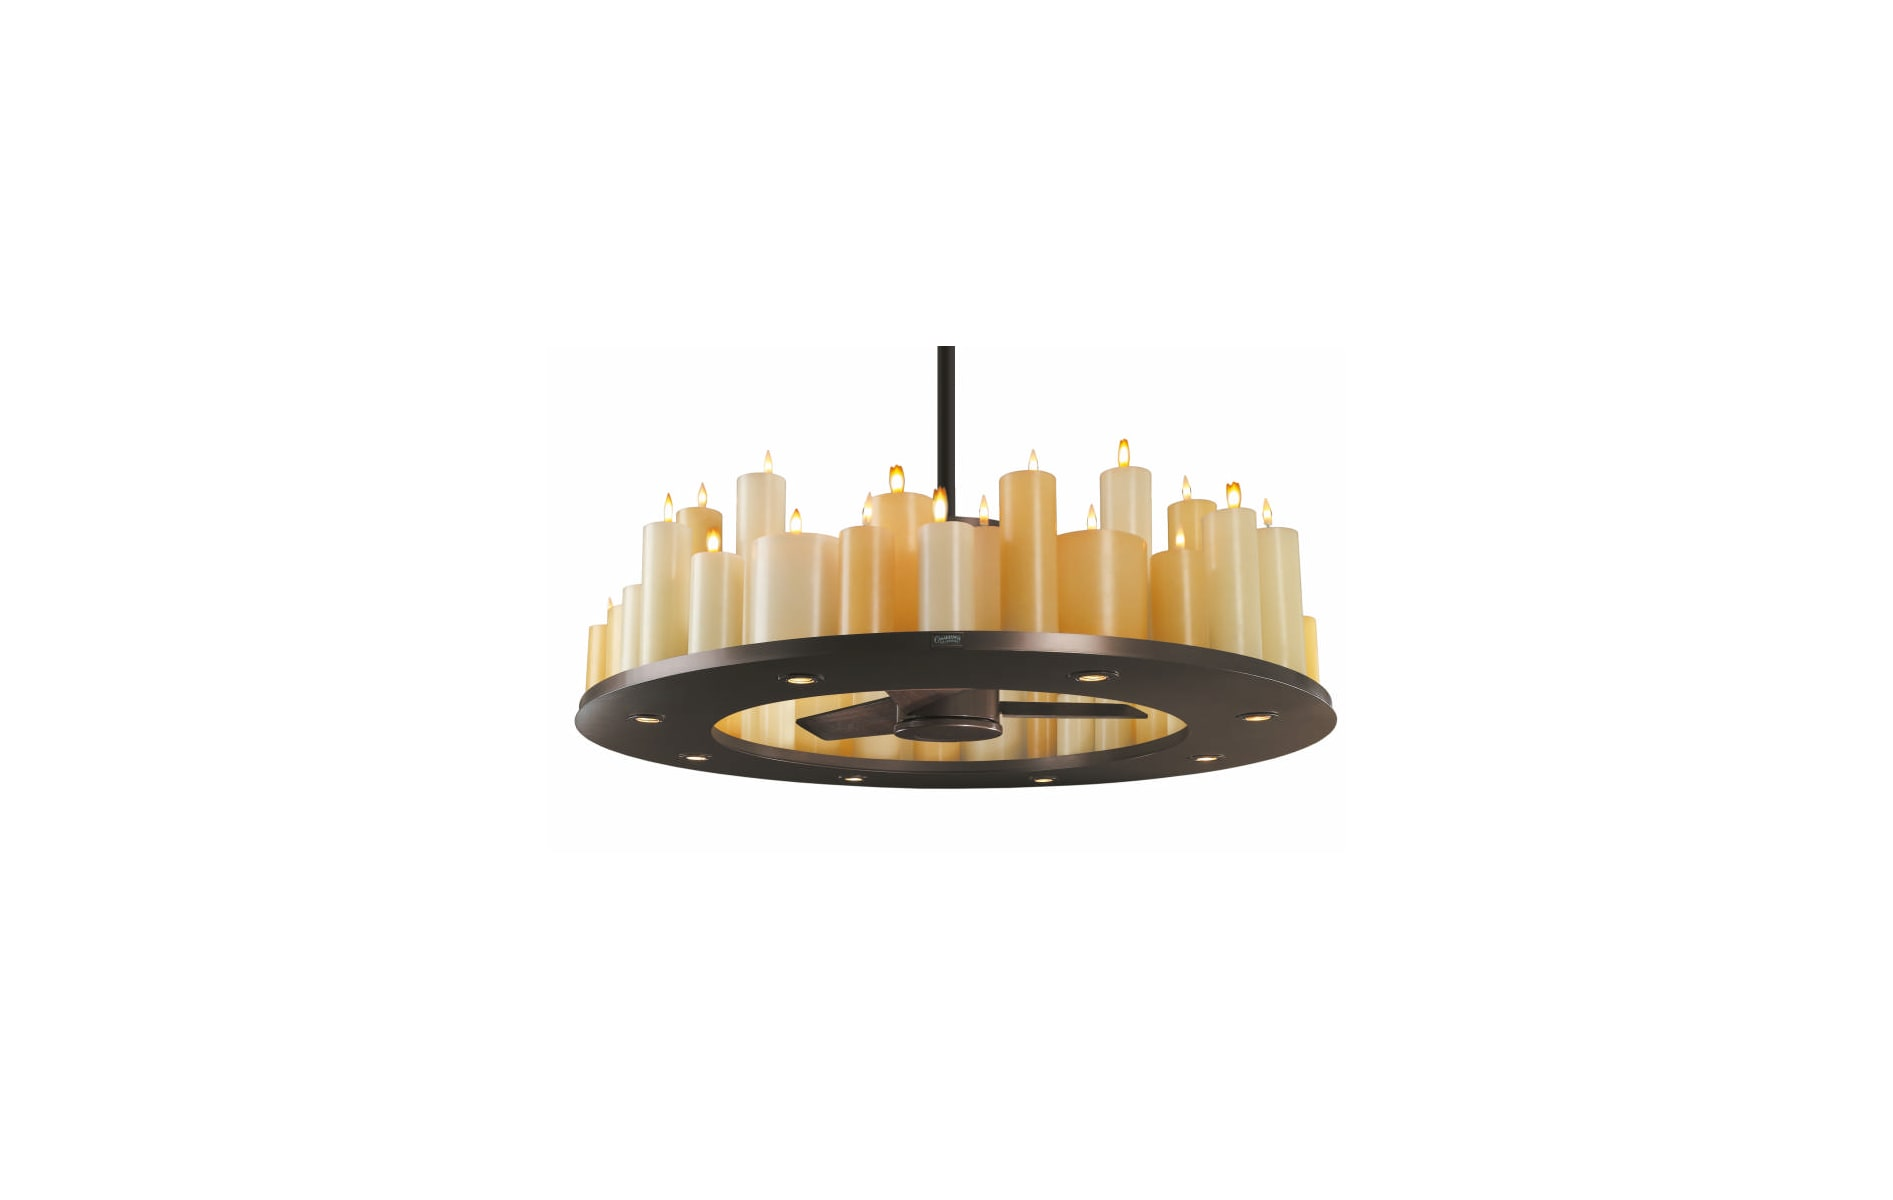 Casablanca C16g73t Oil Rubbed Bronze Candle Lit Chandelier Ceiling Circuits Flickering Fan Combo With Real Wax Candles And Bulbs